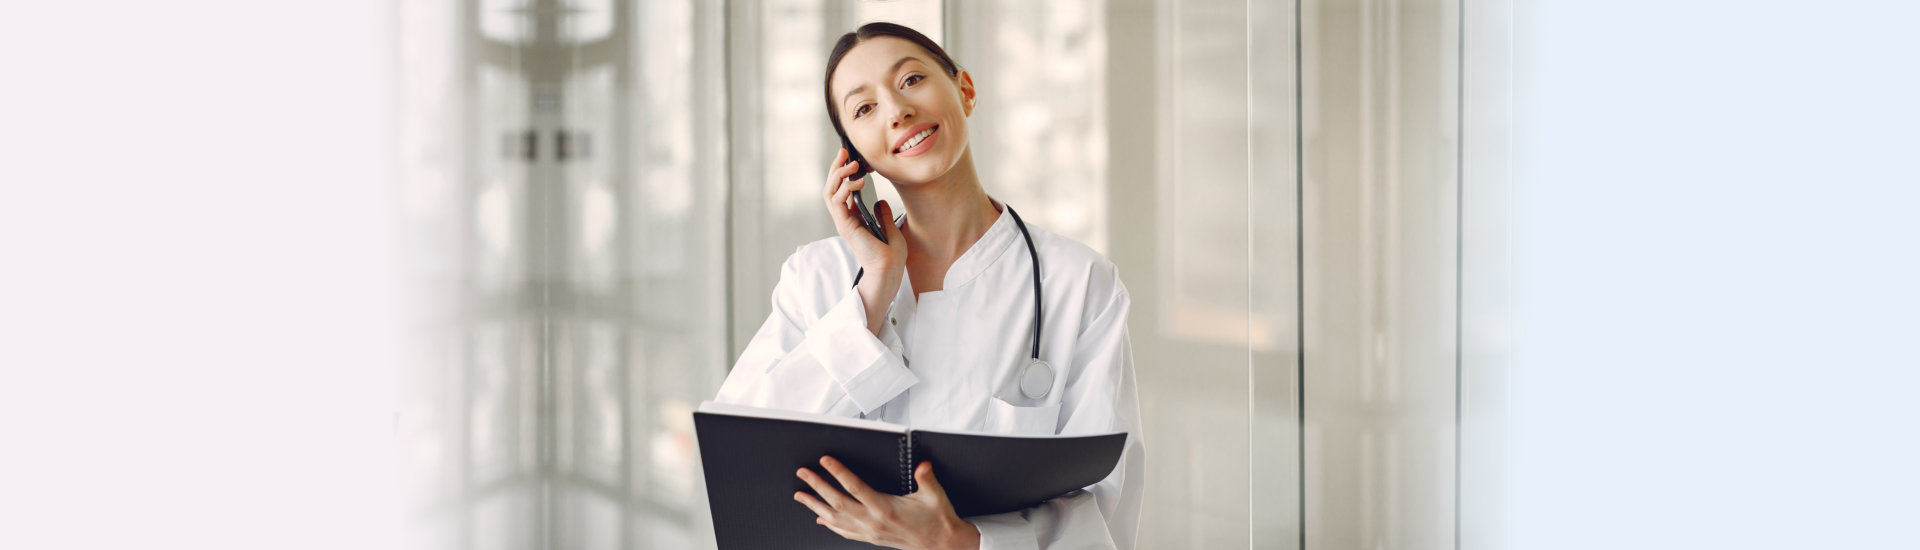 medical staff answering a phone call